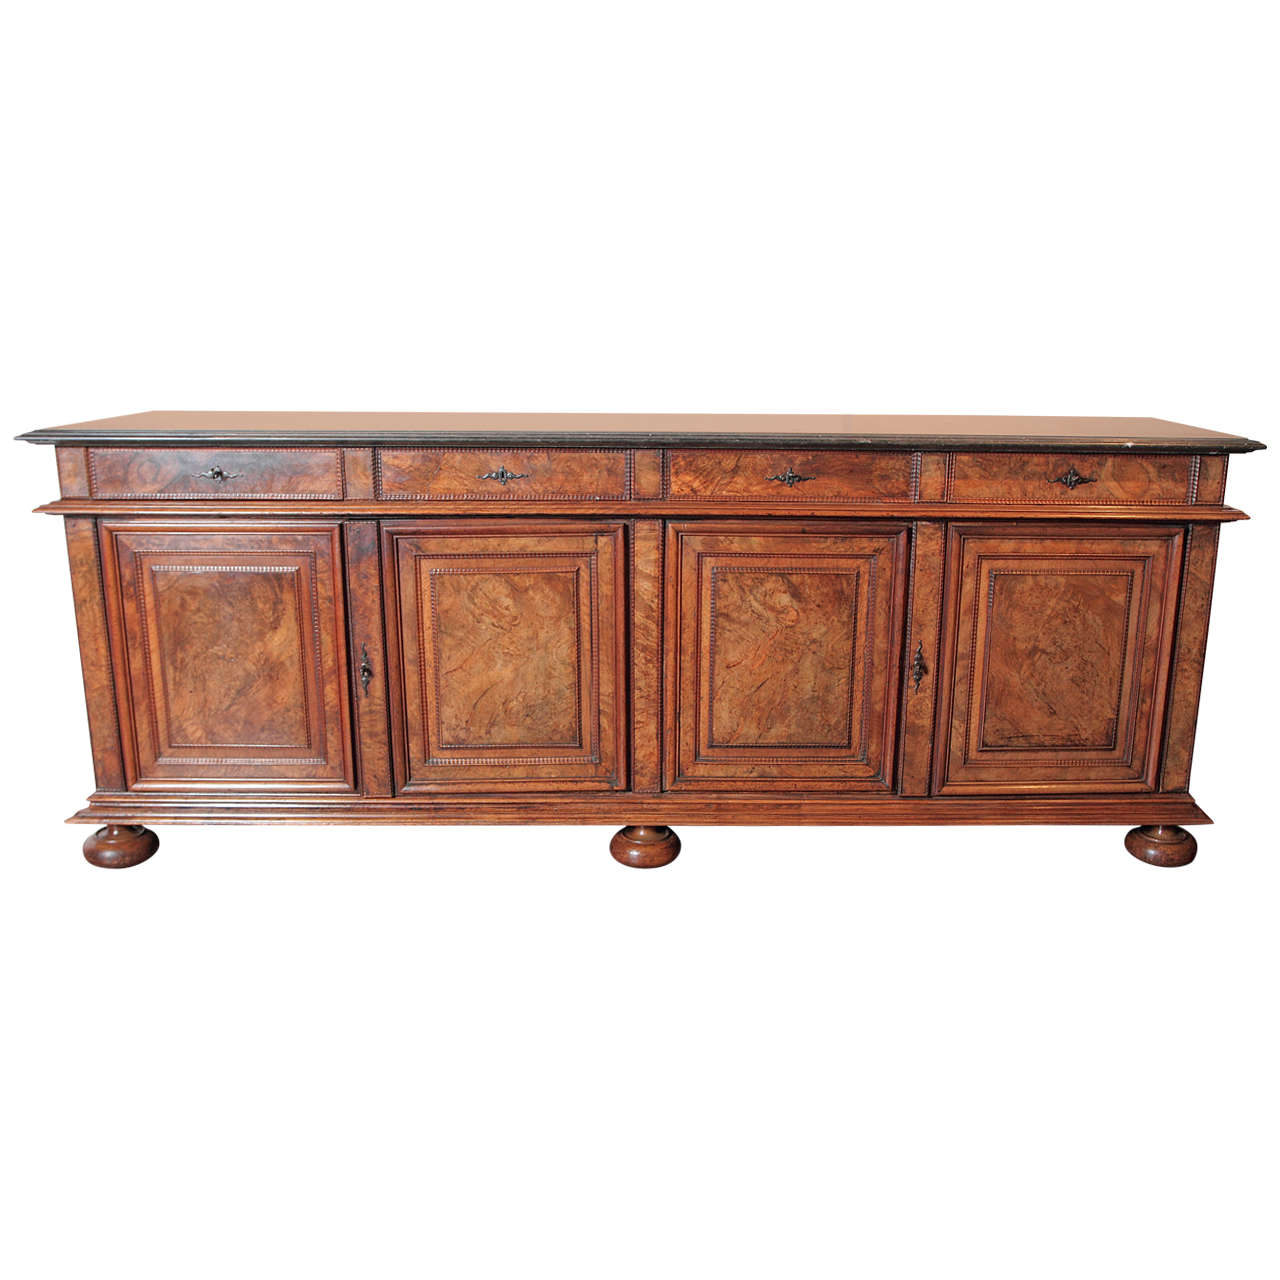 Antique French Walnut Buffet Sideboard with Marble Top 1 - Antique French Walnut Buffet Sideboard With Marble Top At 1stdibs